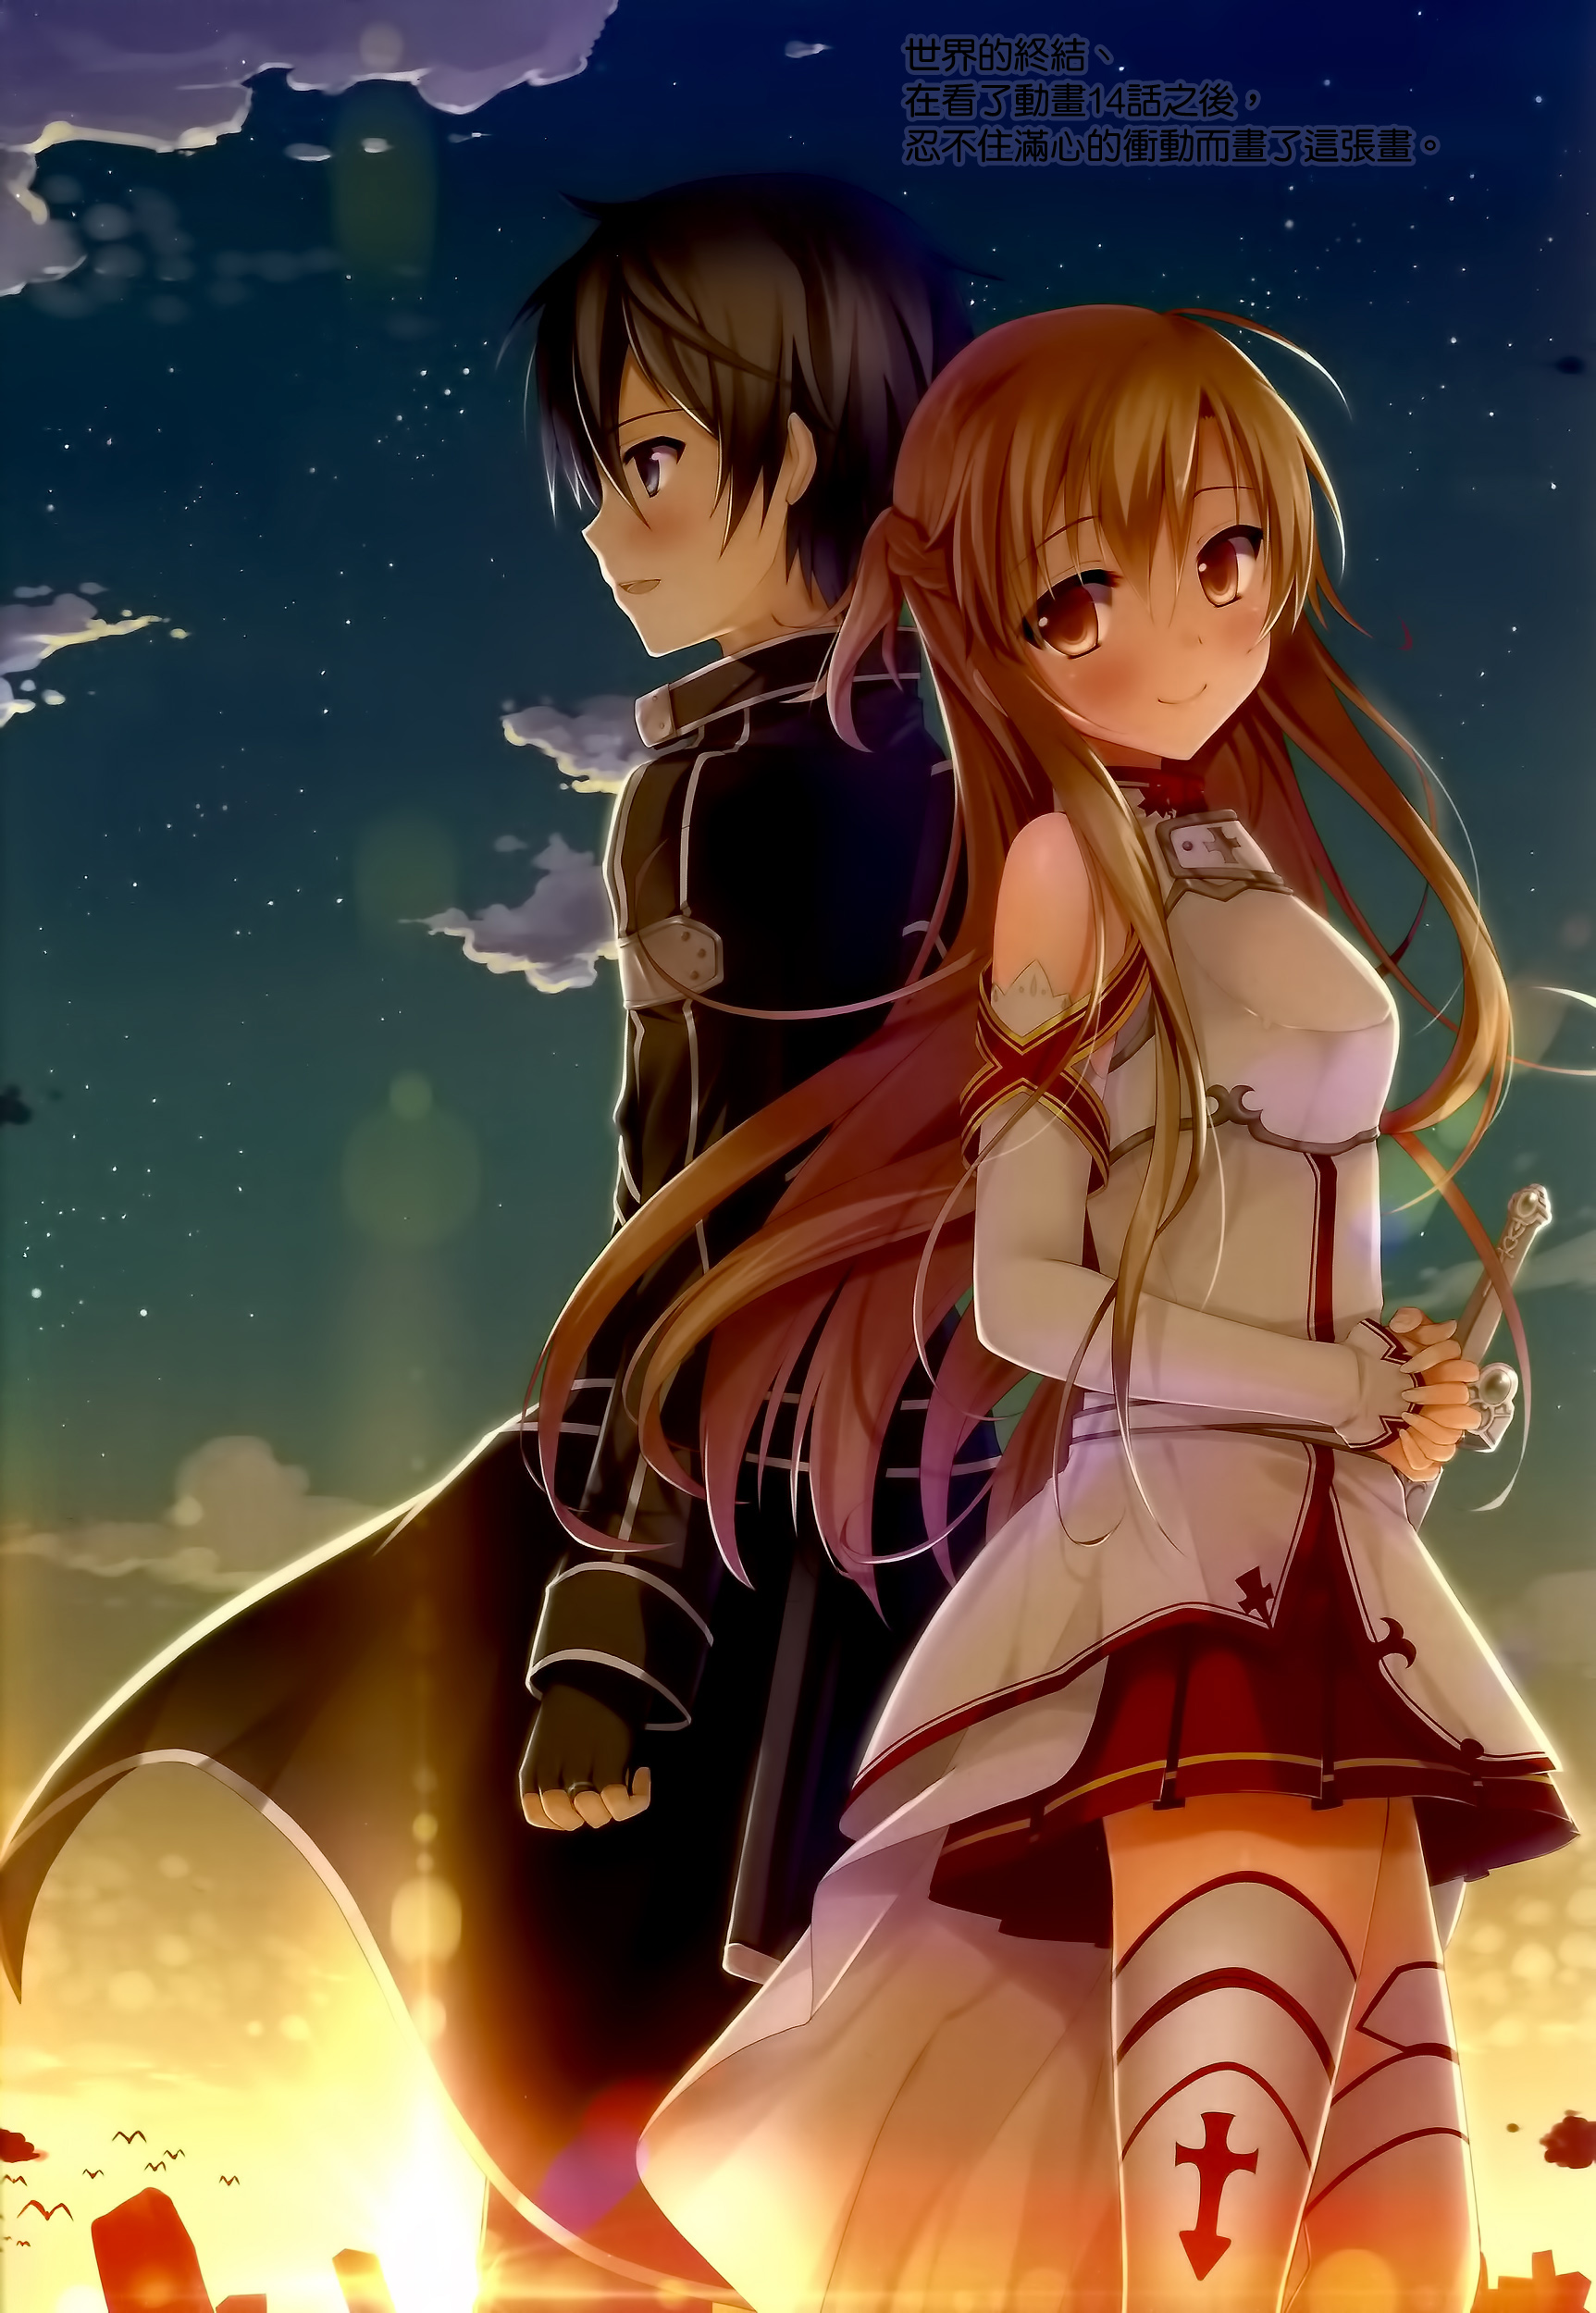 Sao Kirito And Asuna Sunset By Dominlol On Deviantart